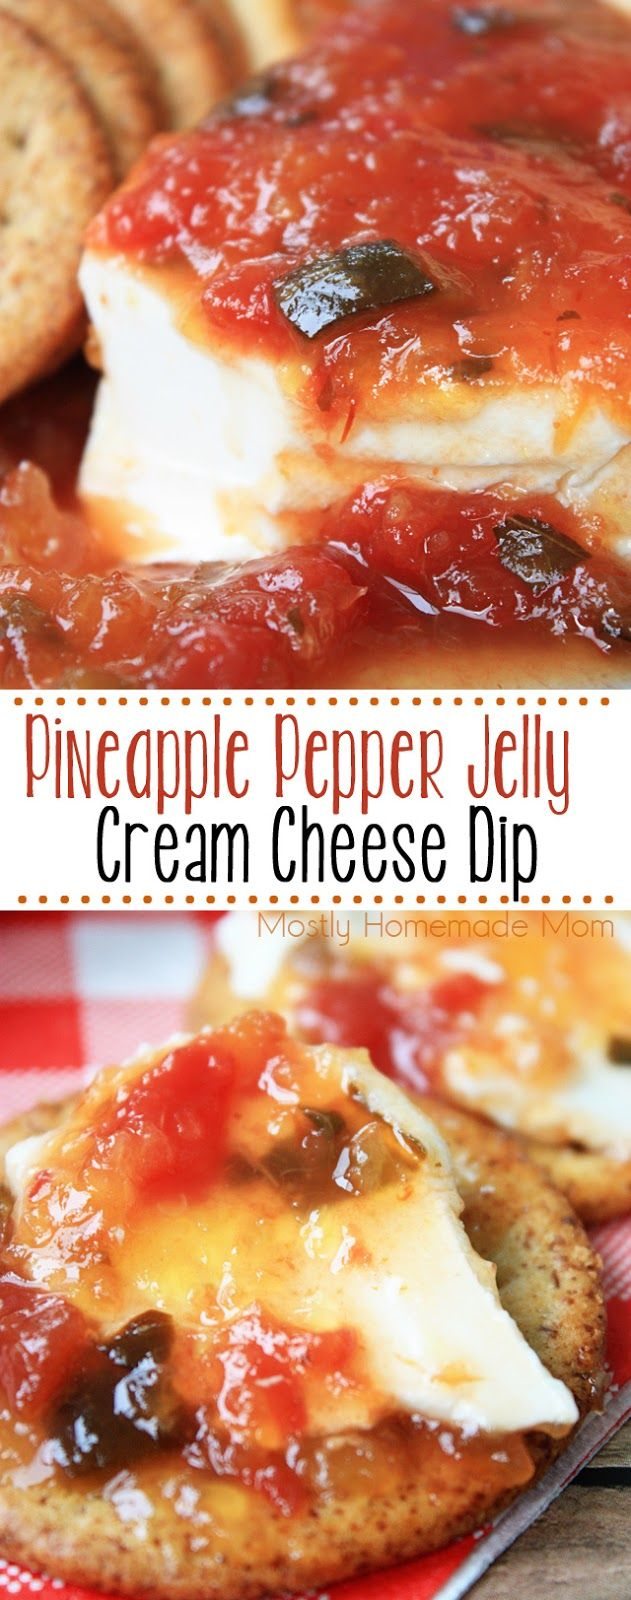 Pineapple Pepper Jelly Cream Cheese Dip - Pineapple preserves and salsa over a block of cream cheese and some great crackers. Instant summer party food! #DaretoEntertain AD